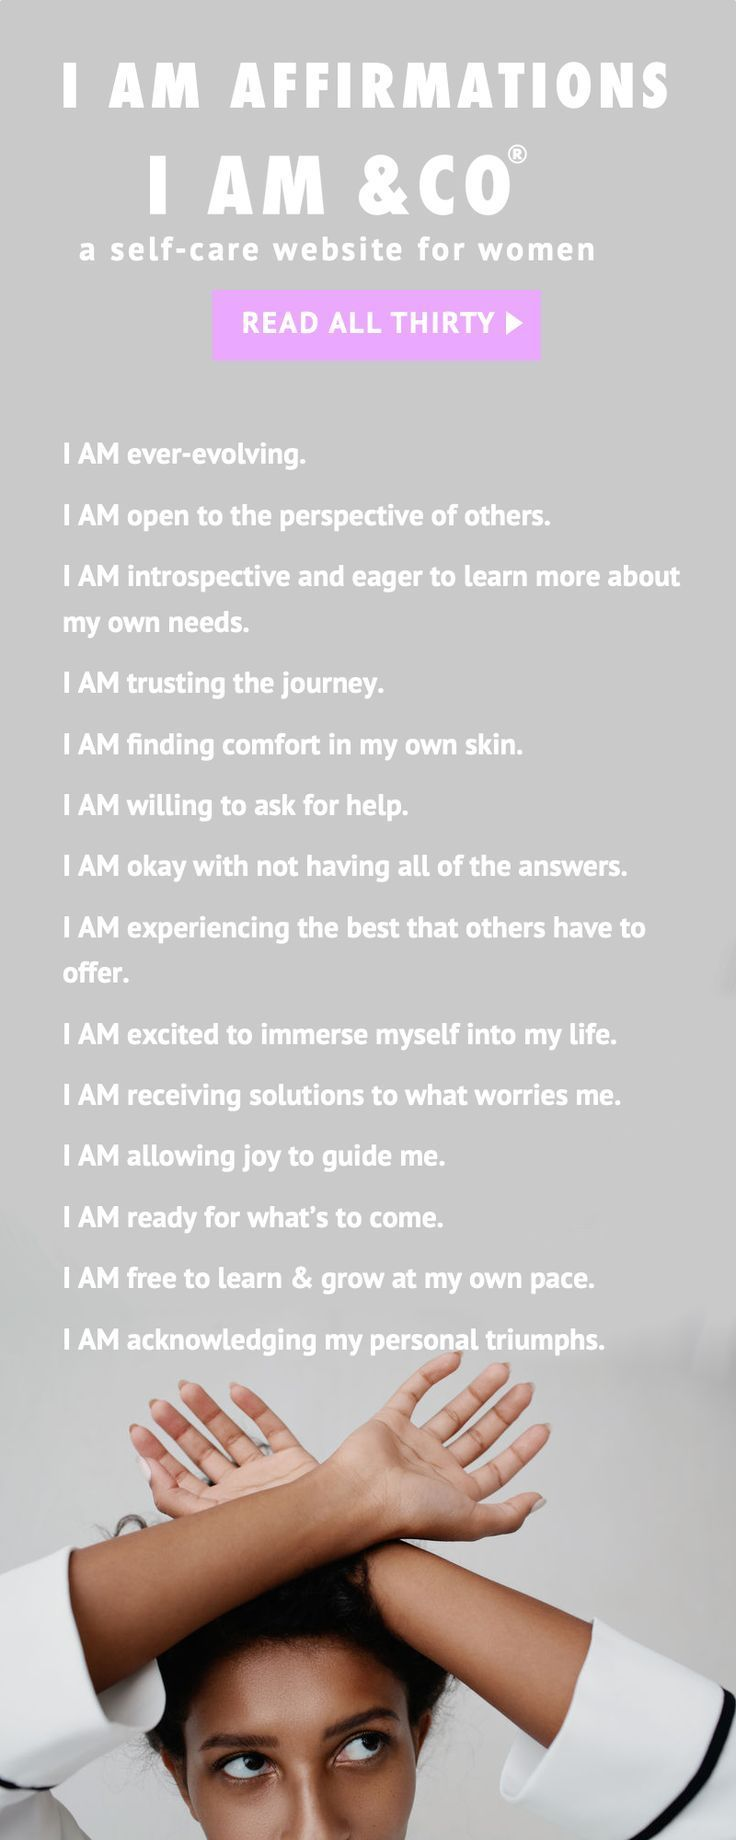 Our list of I AM Affirmations for abundance, power, success, money, and love. Use them gently and know that the purpose of I AM affirmations is for the feeling.  i am affirmations, i am affirmations law of attraction, i am affirmations self-esteem, i am a